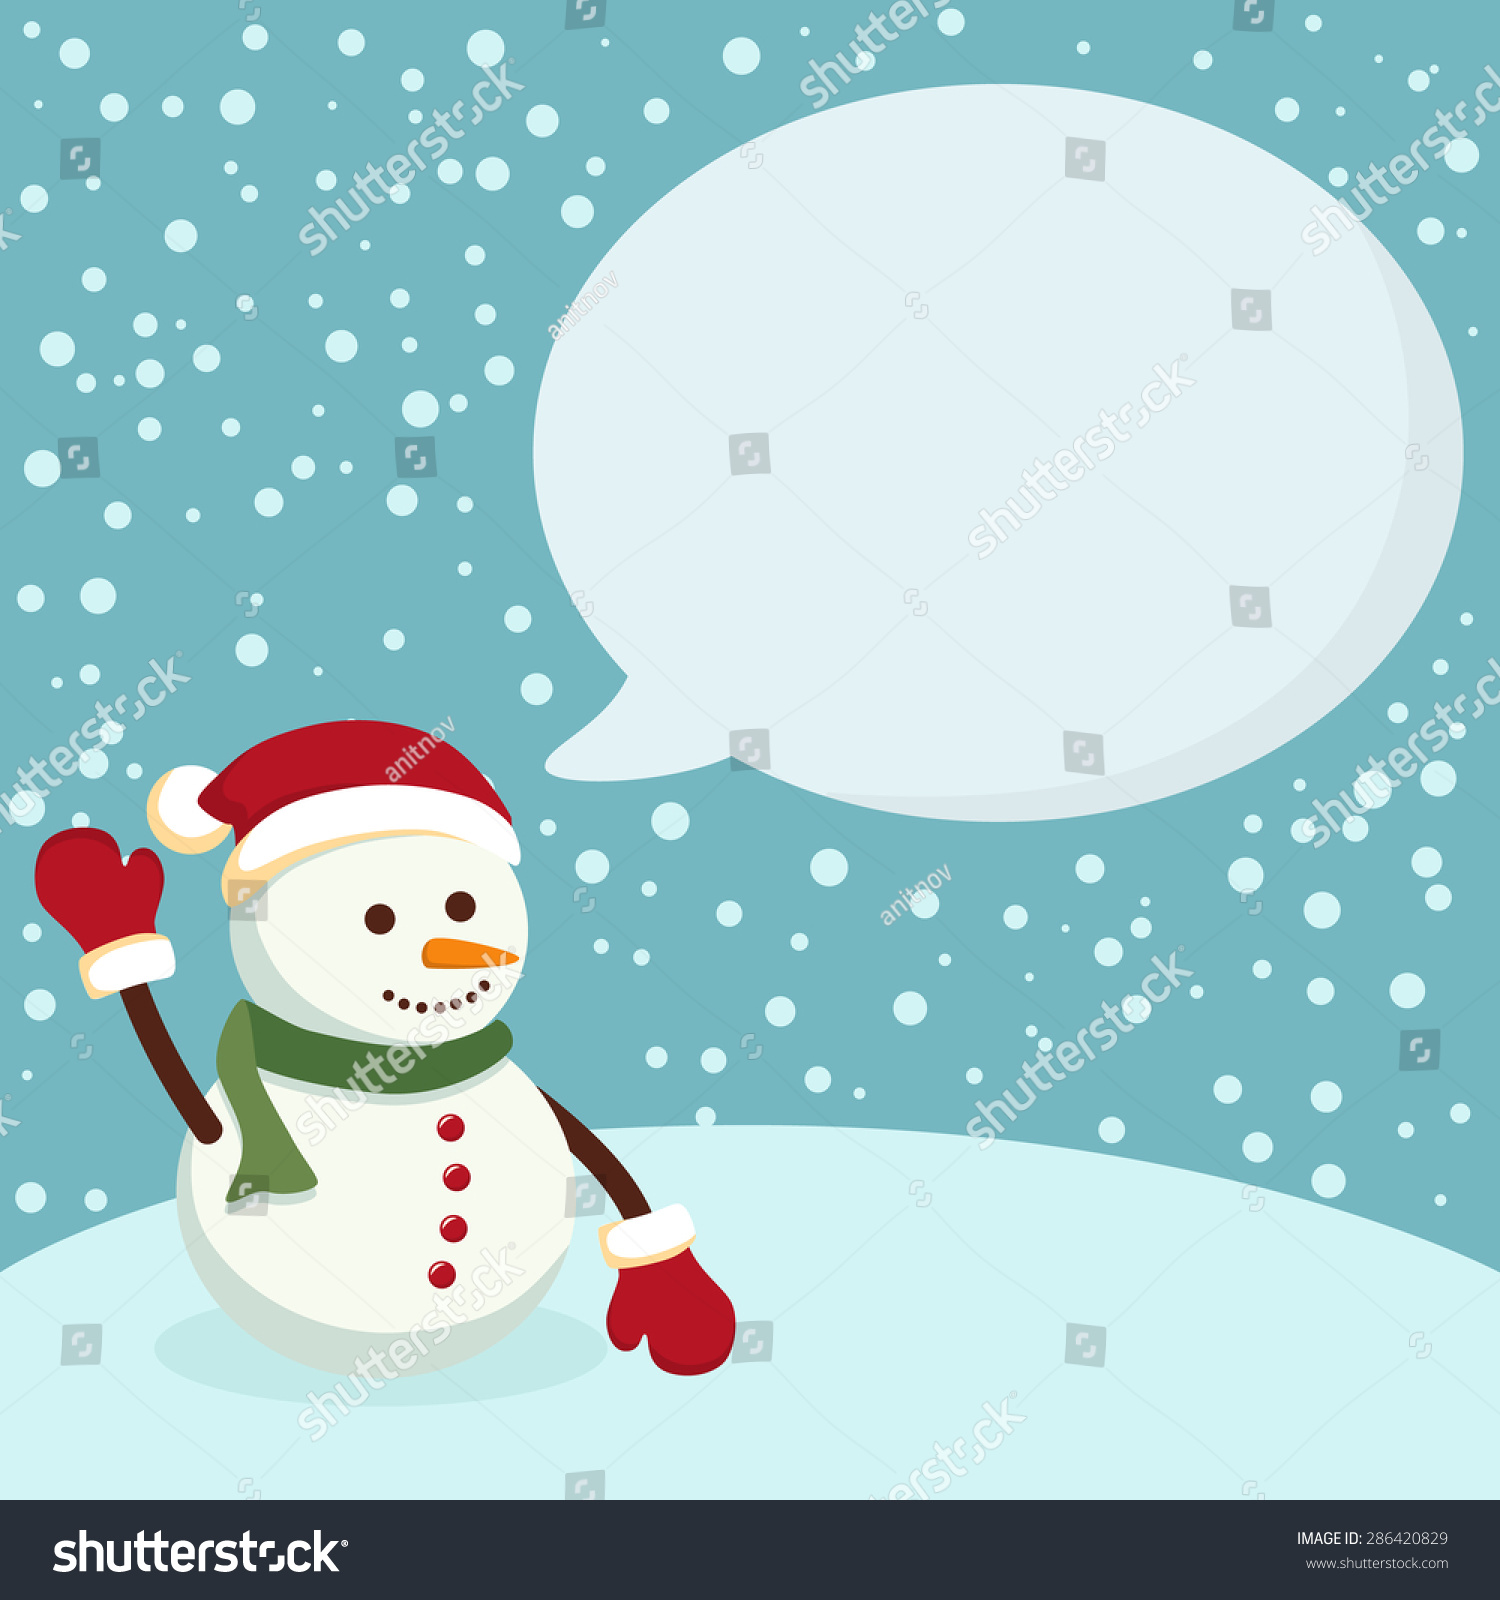 Snowman blue notes christmas greeting card stock vector 286420829 snowman blue notes christmas greeting card notes with snowman in blue winter background kristyandbryce Choice Image